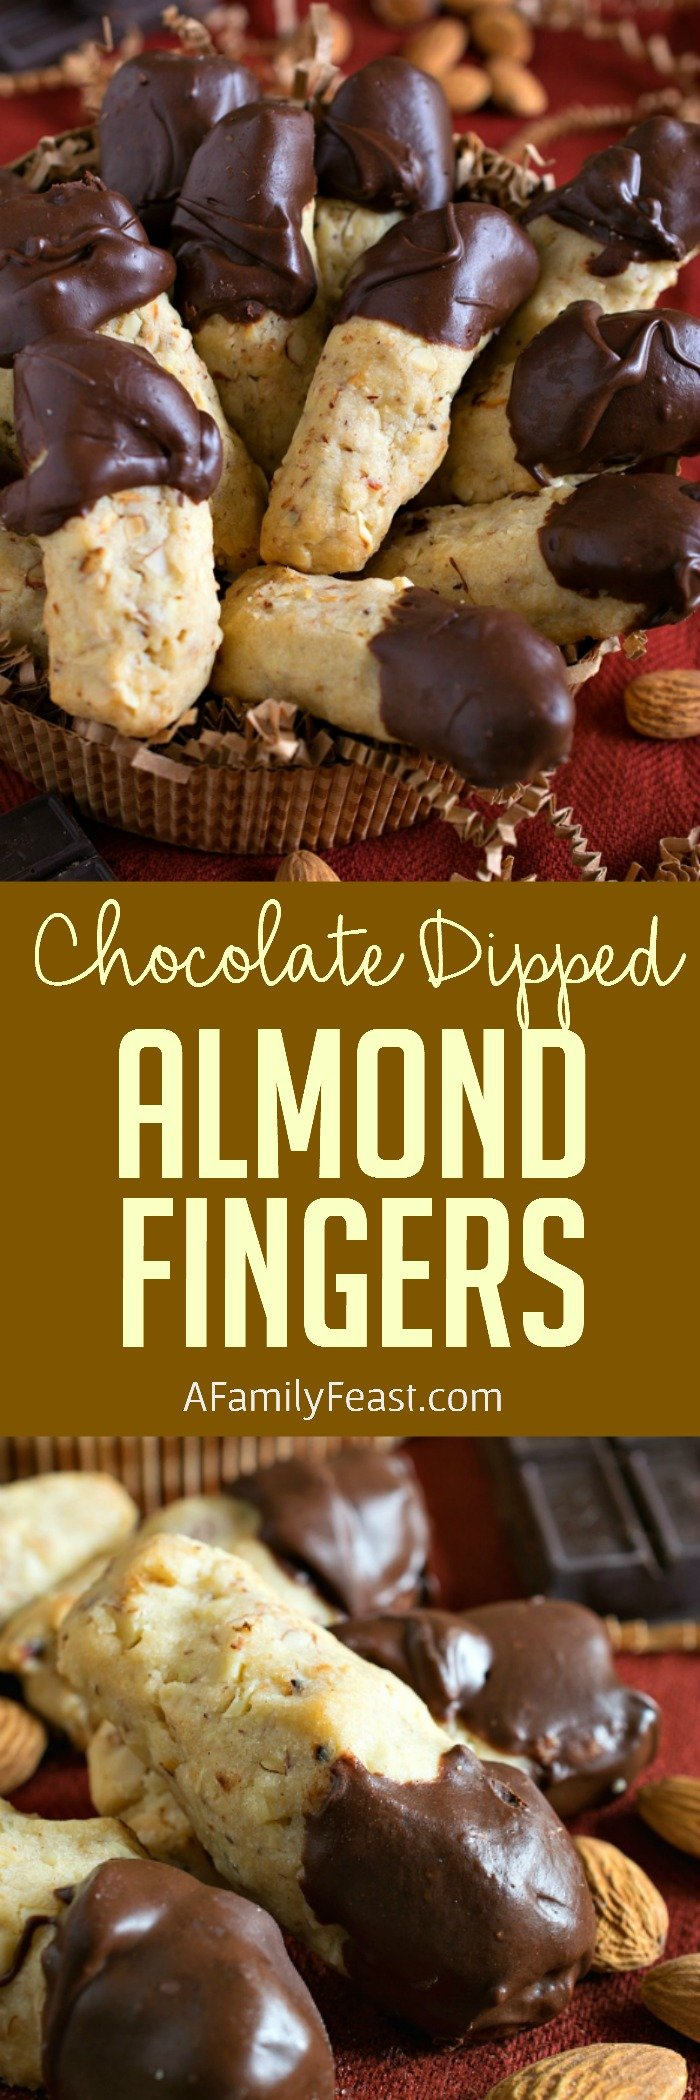 Chocolate Dipped Almond Fingers - Light and crumbly almond-stuffed shortbread cookies dipped in chocolate. Cookie perfection!